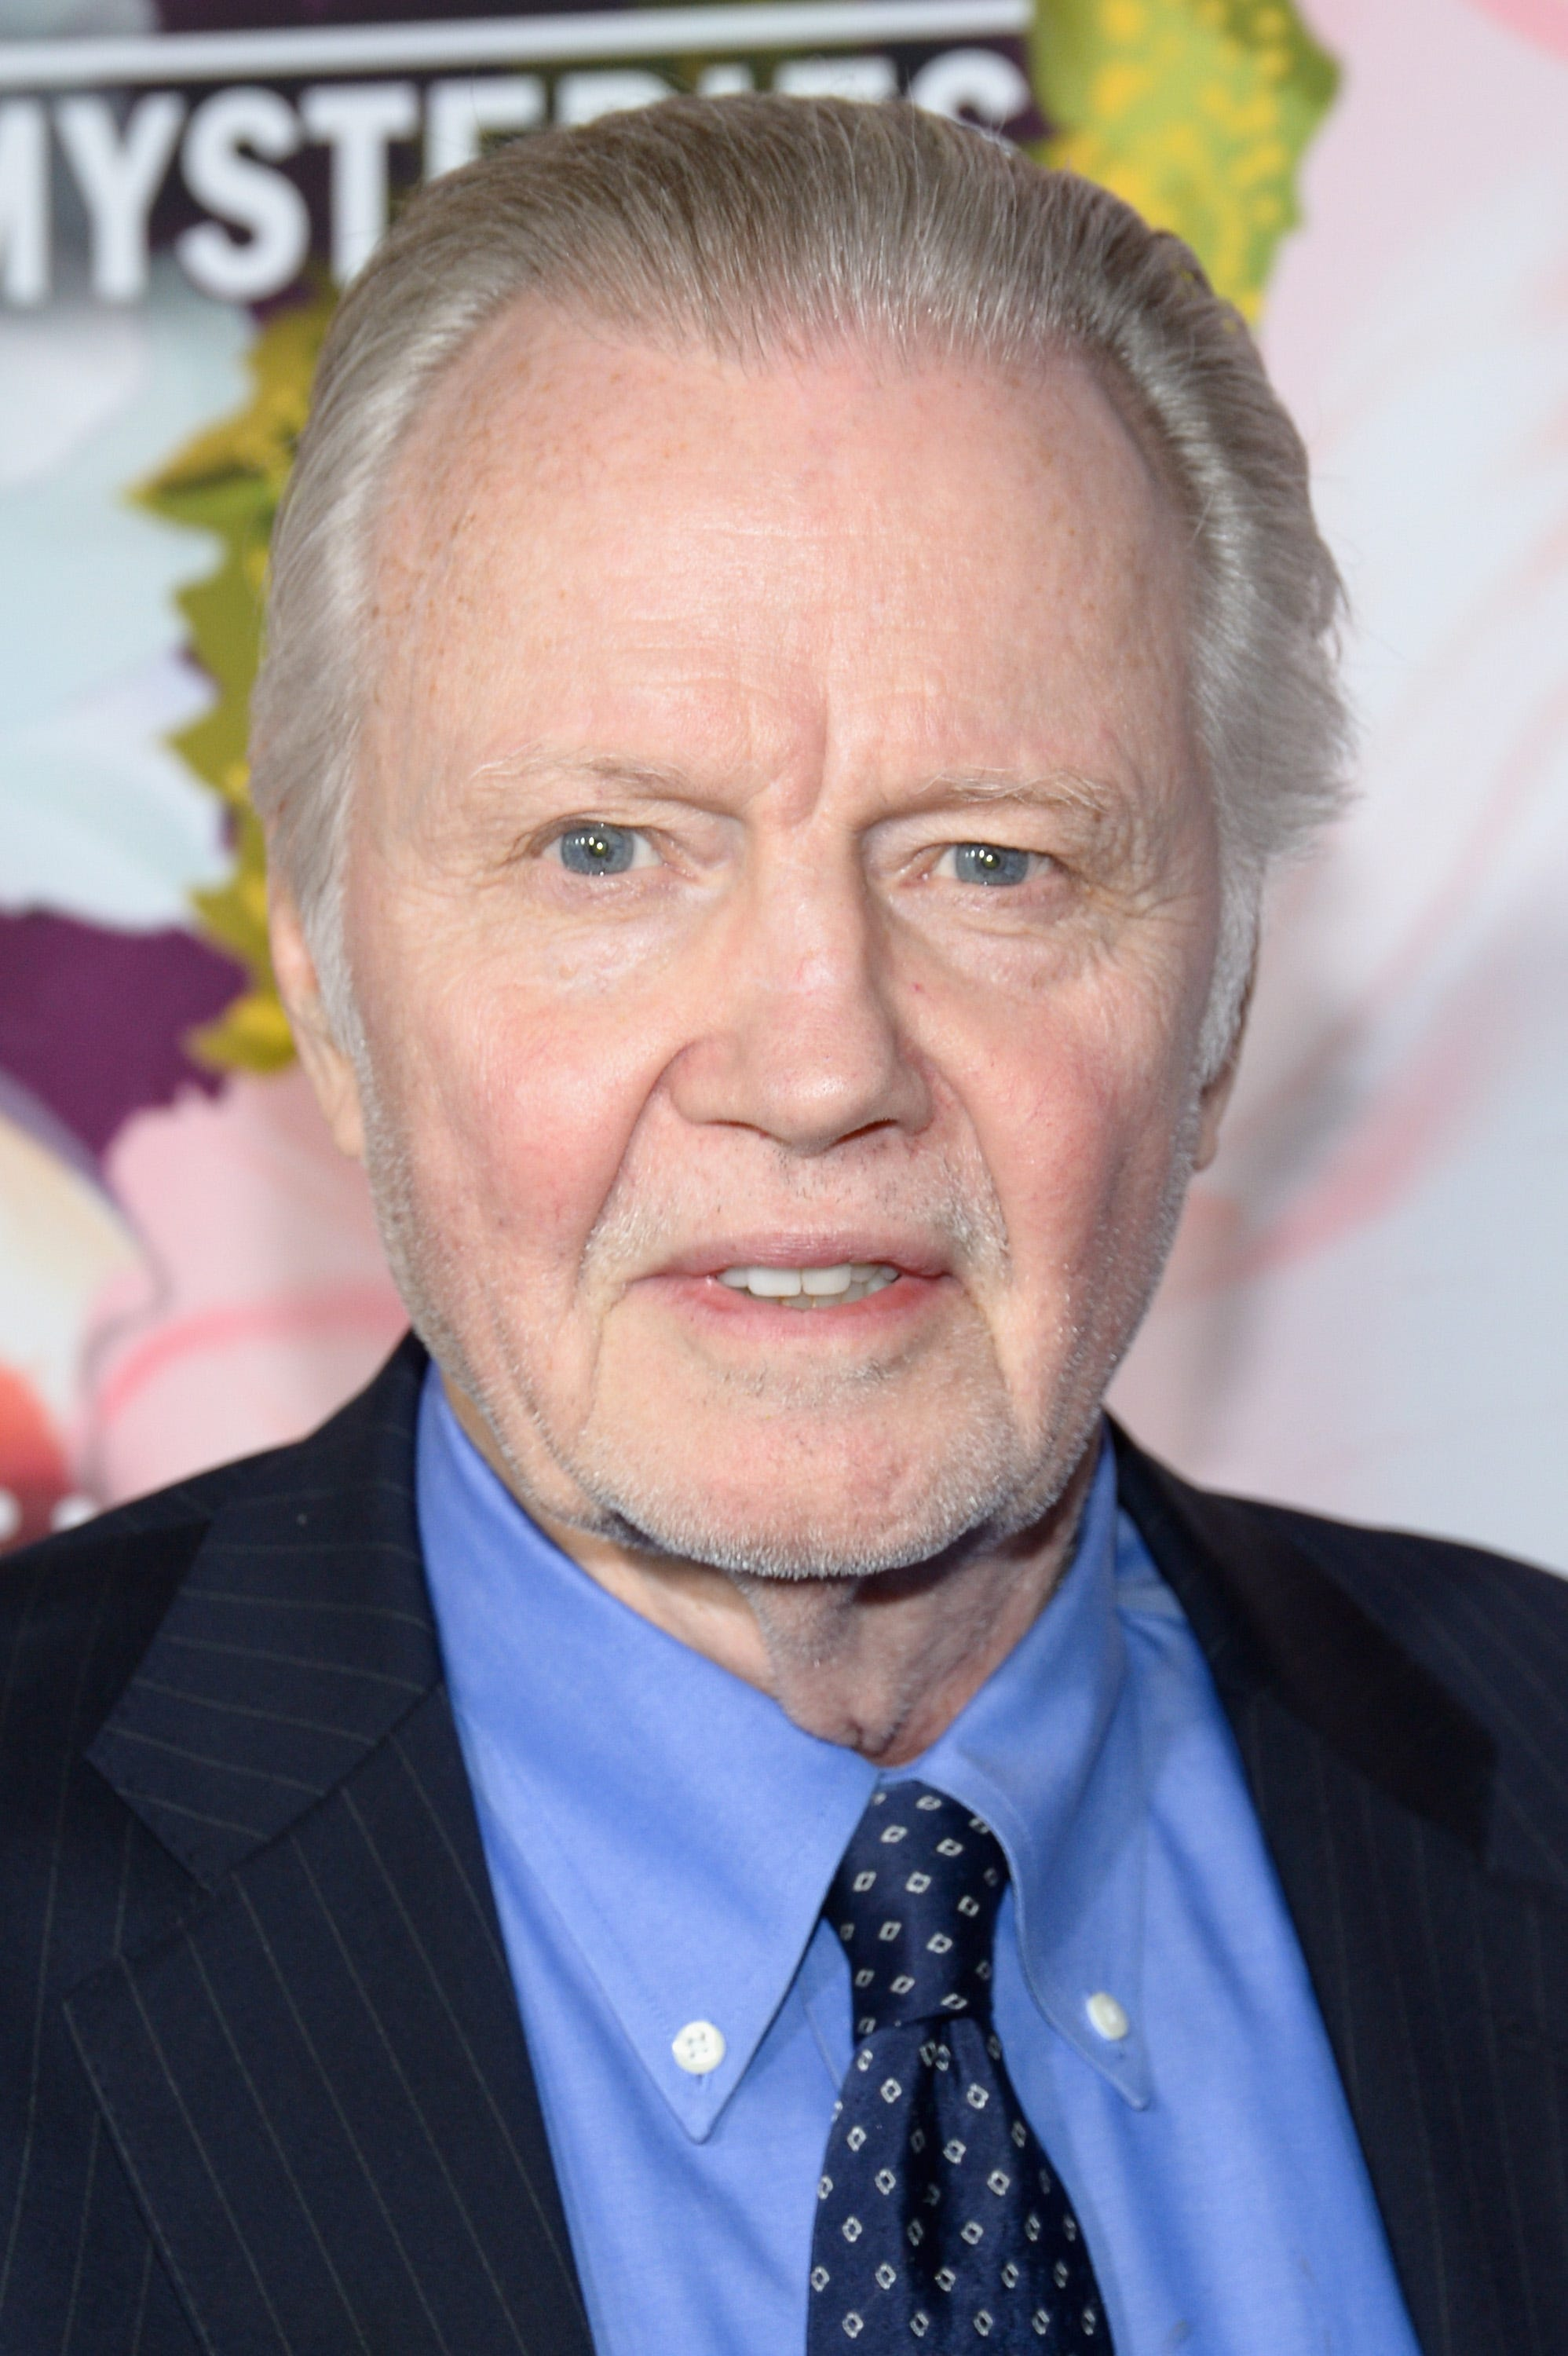 usatoday.com - Nicholas Wu, USA TODAY - Jon Voight releases video calling Trump 'the greatest president since Abraham Lincoln'